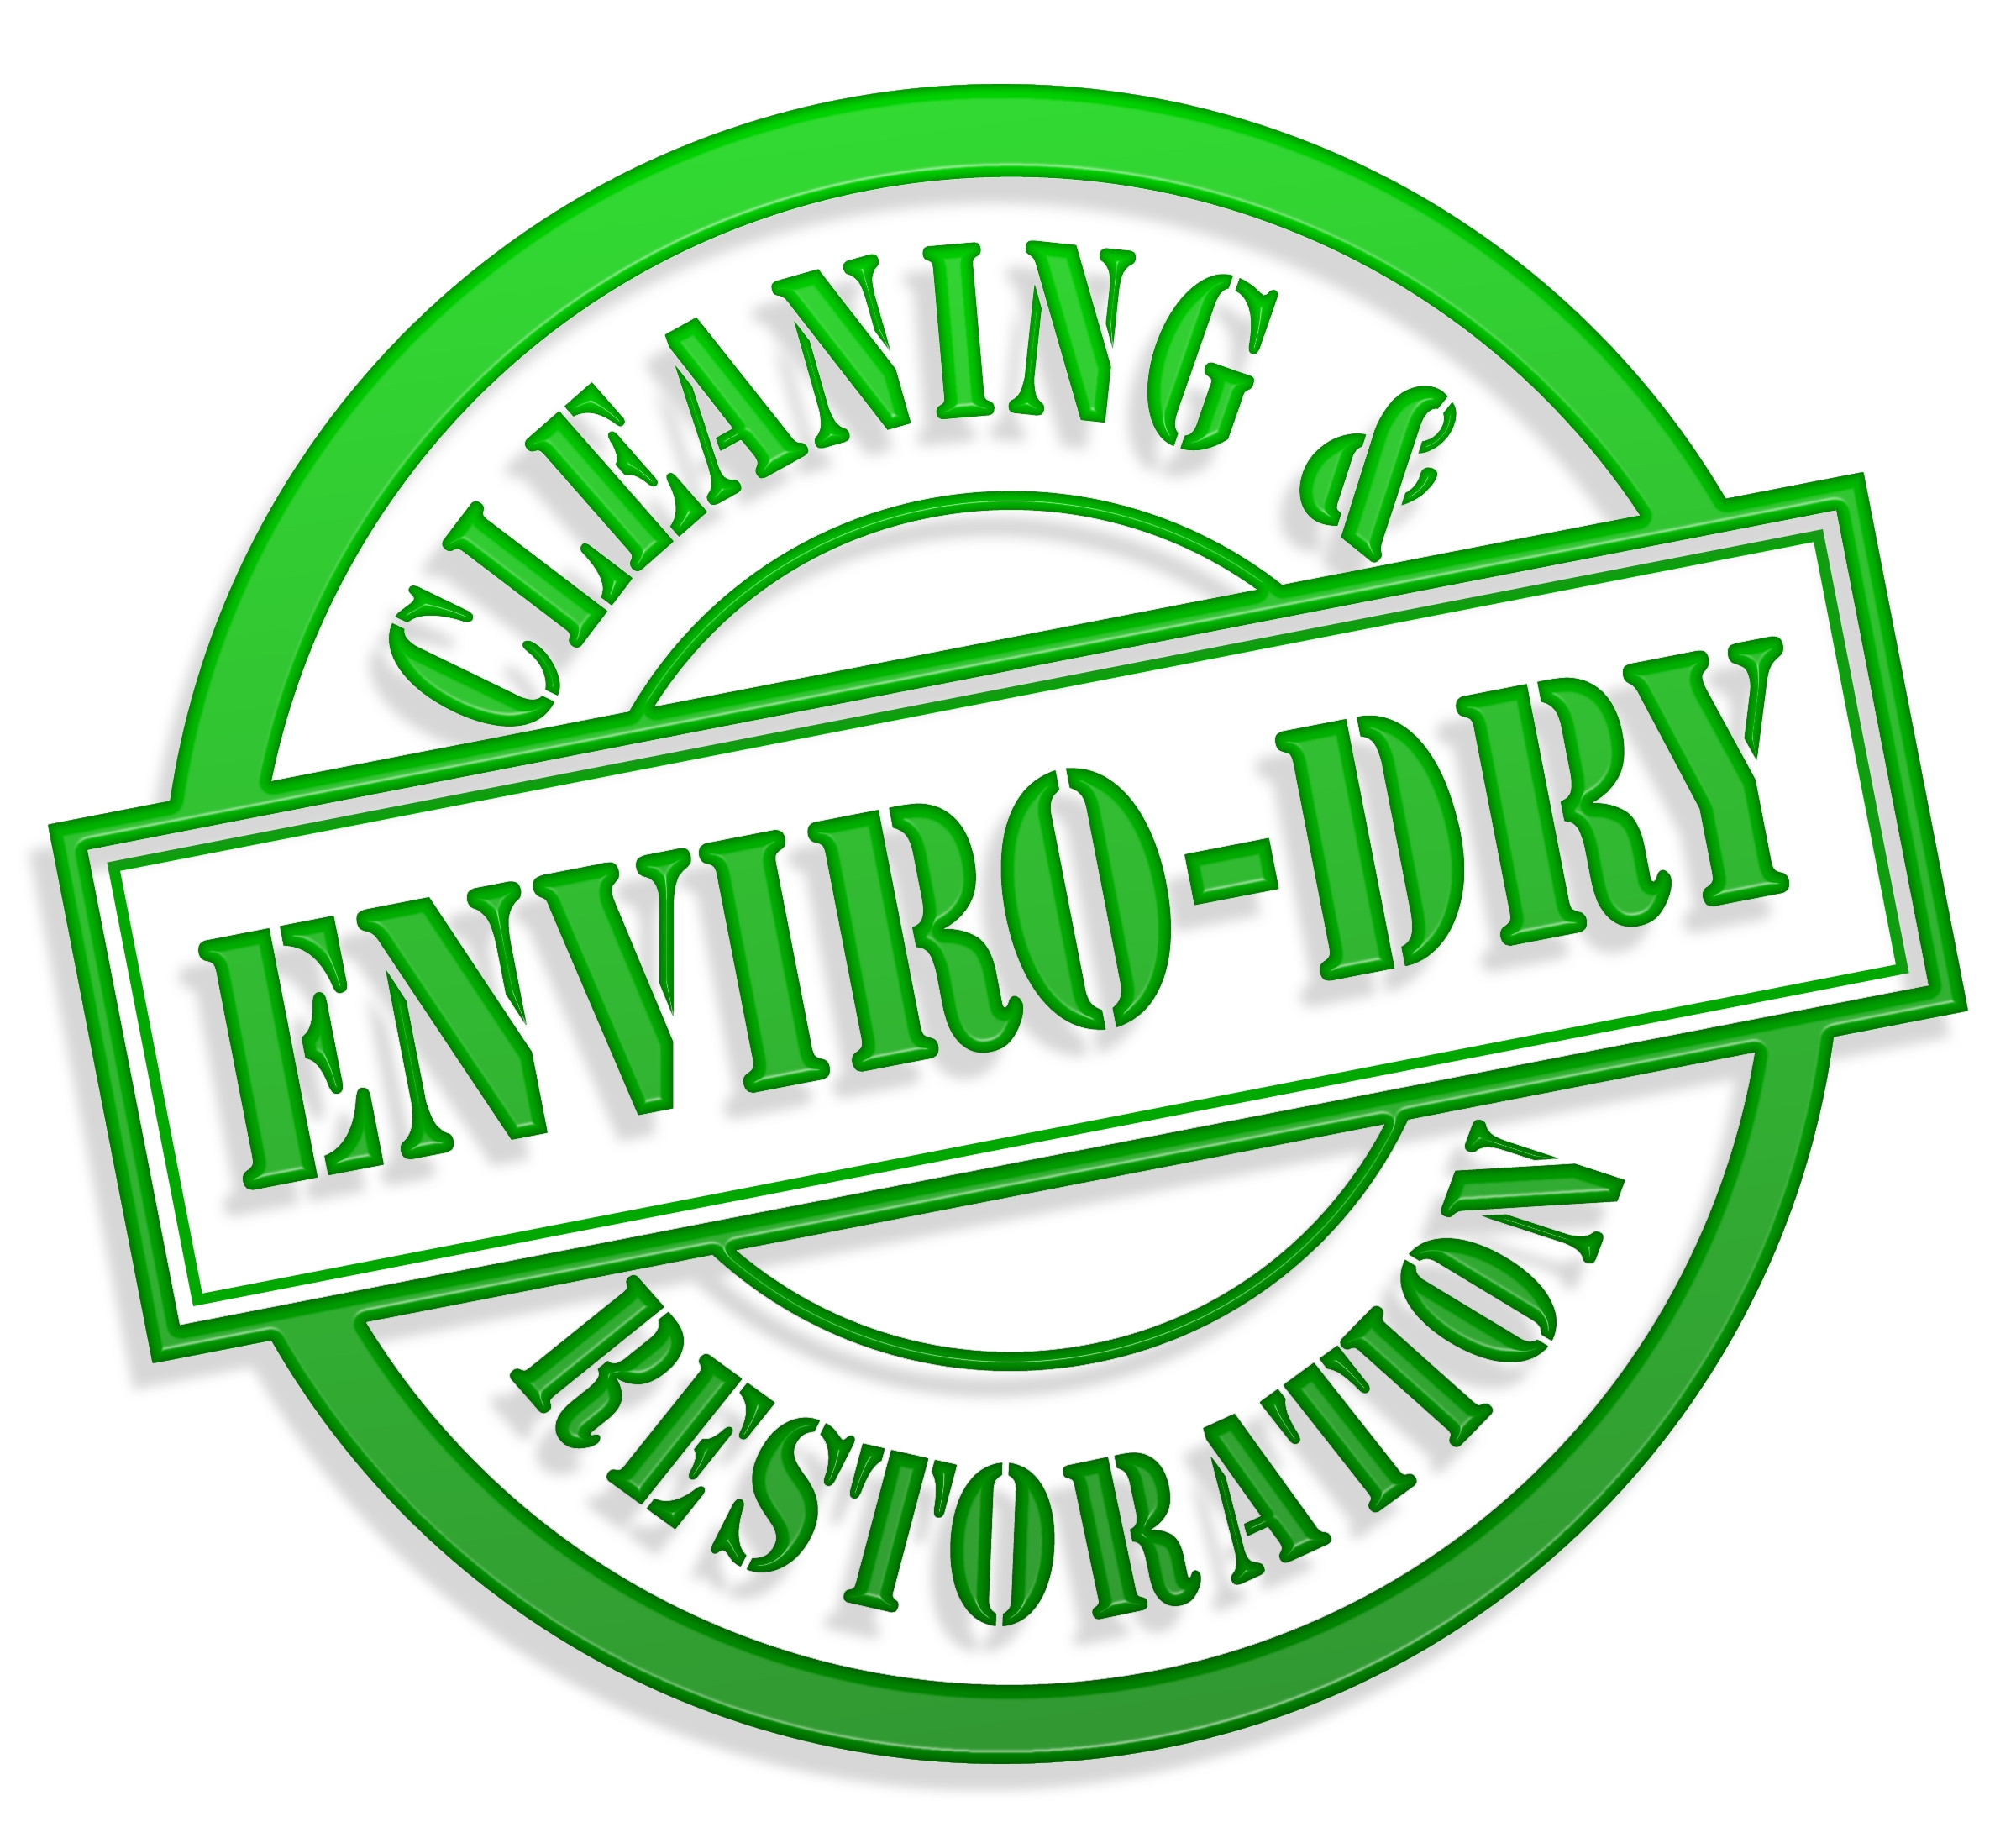 Enviro-Dry Carpet Cleaning and Restoration